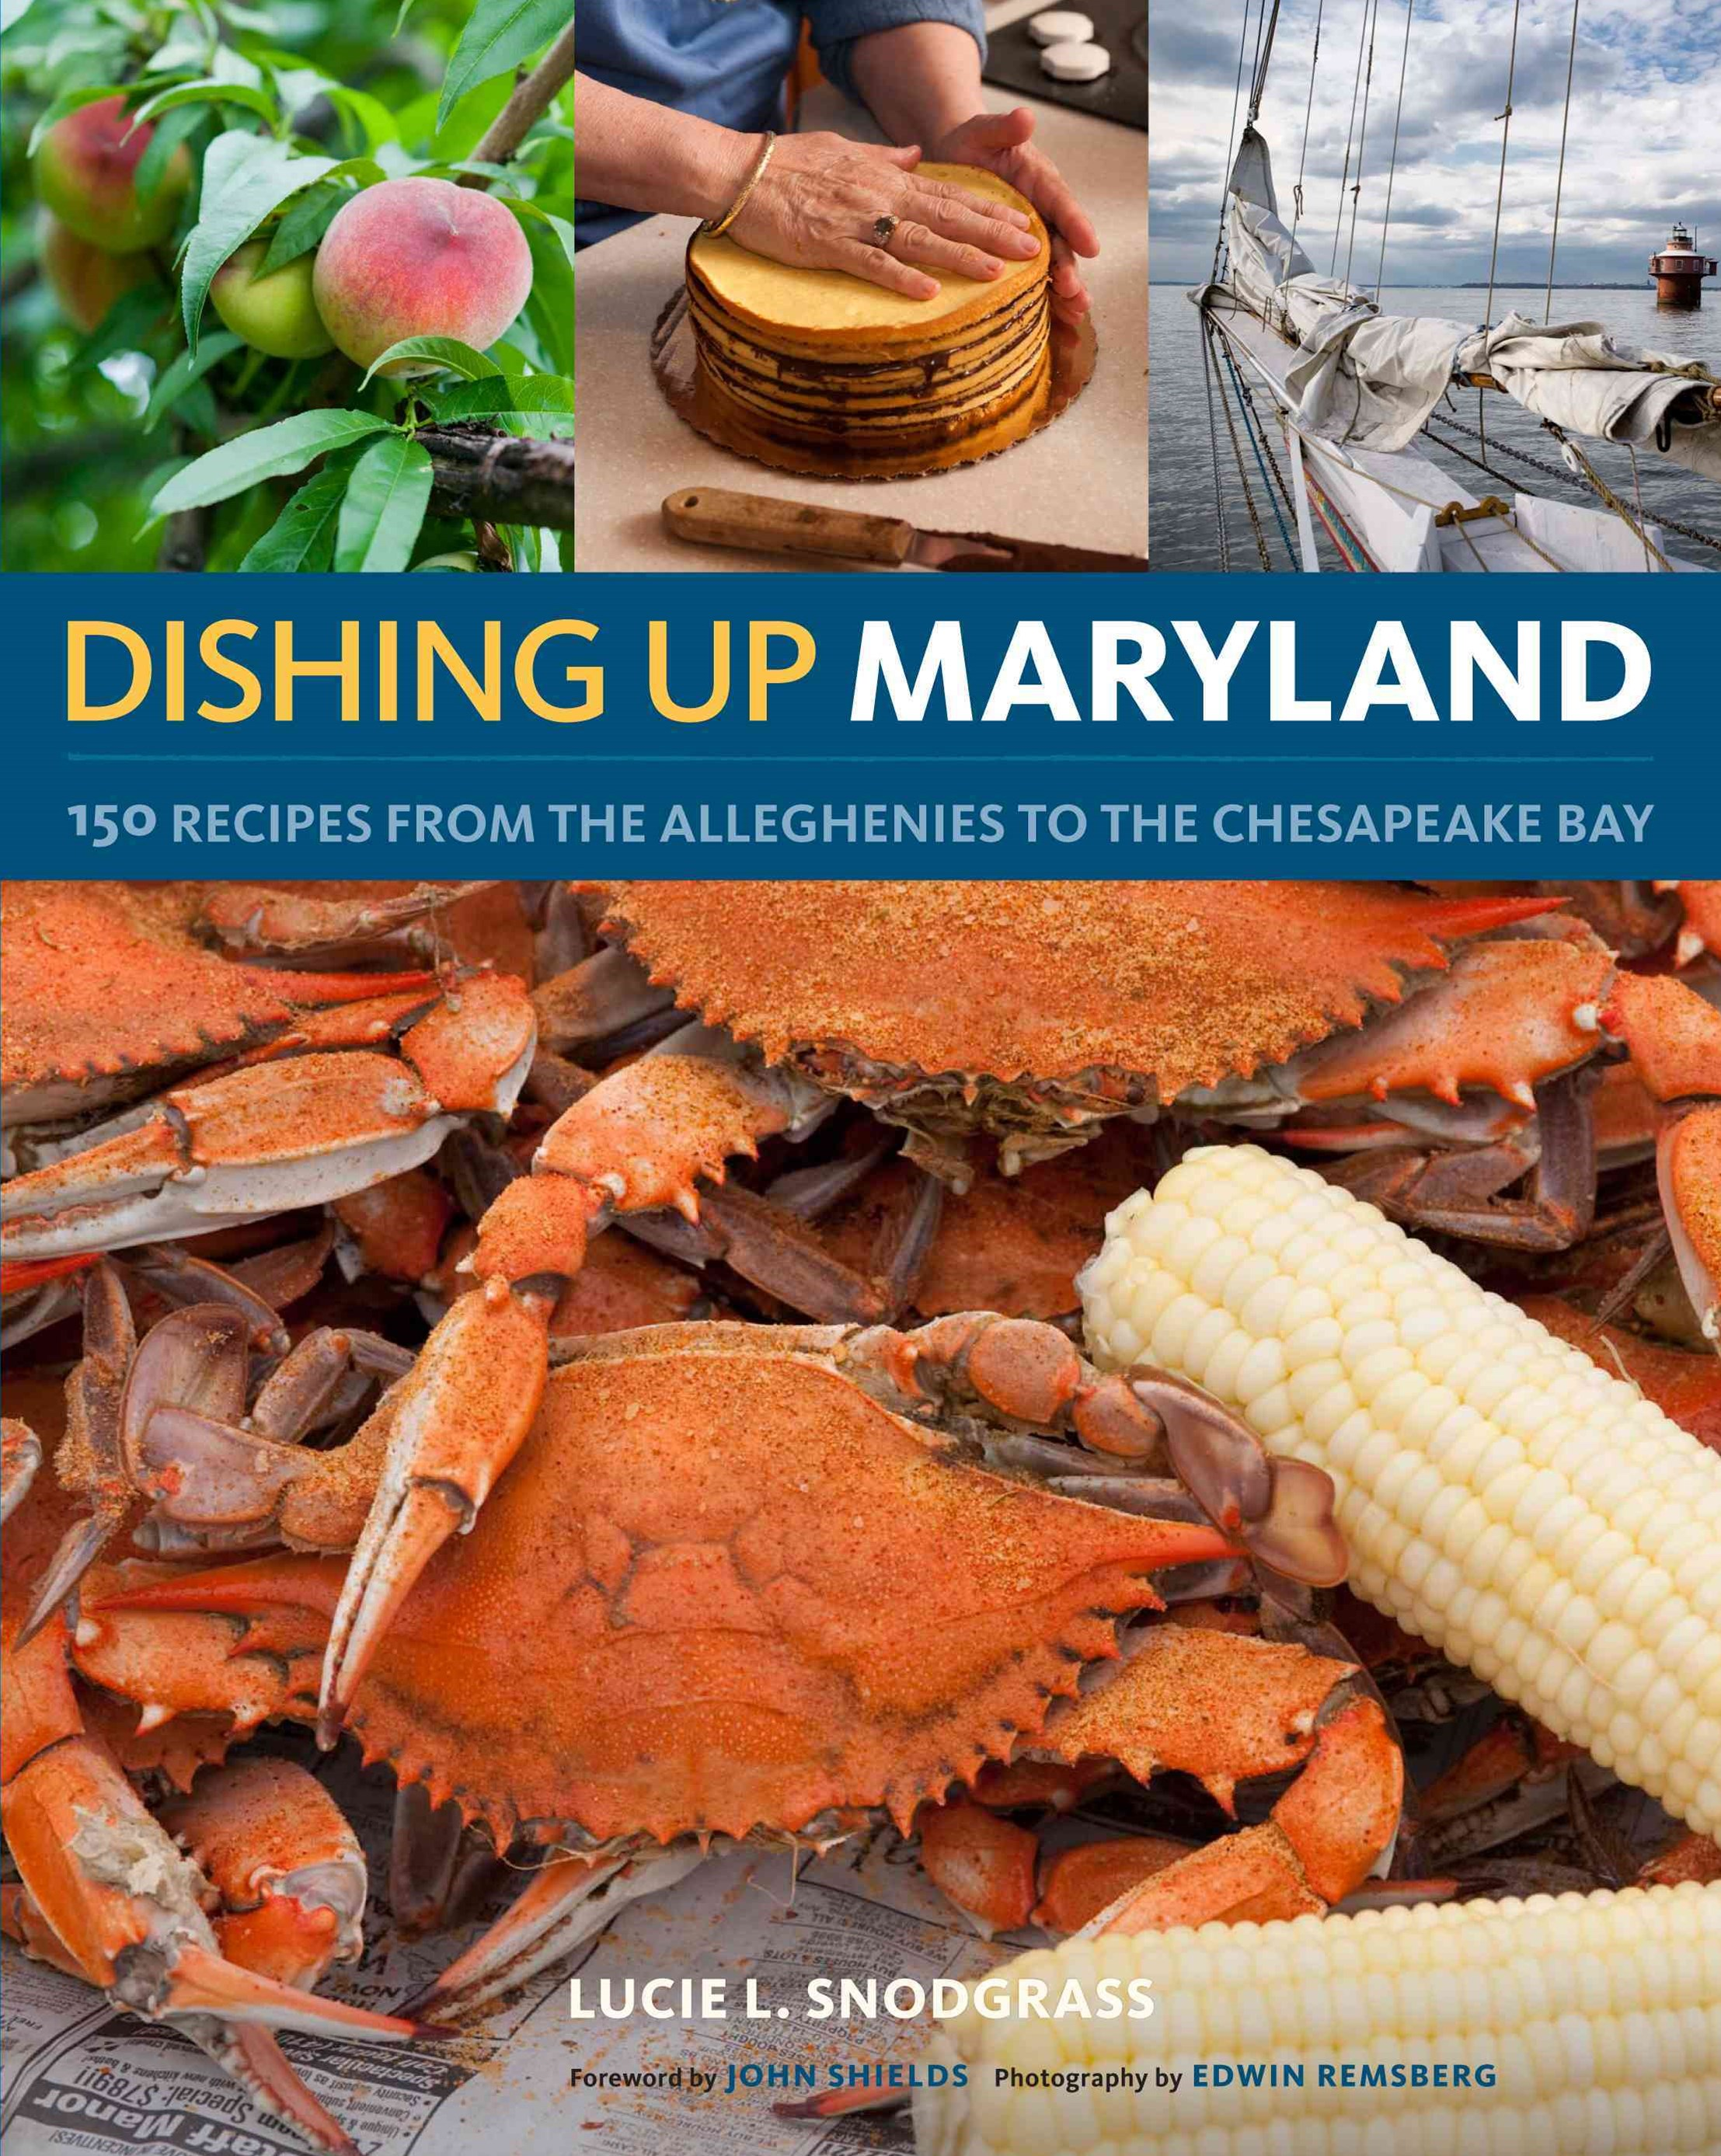 Dishing Up(R) Maryland